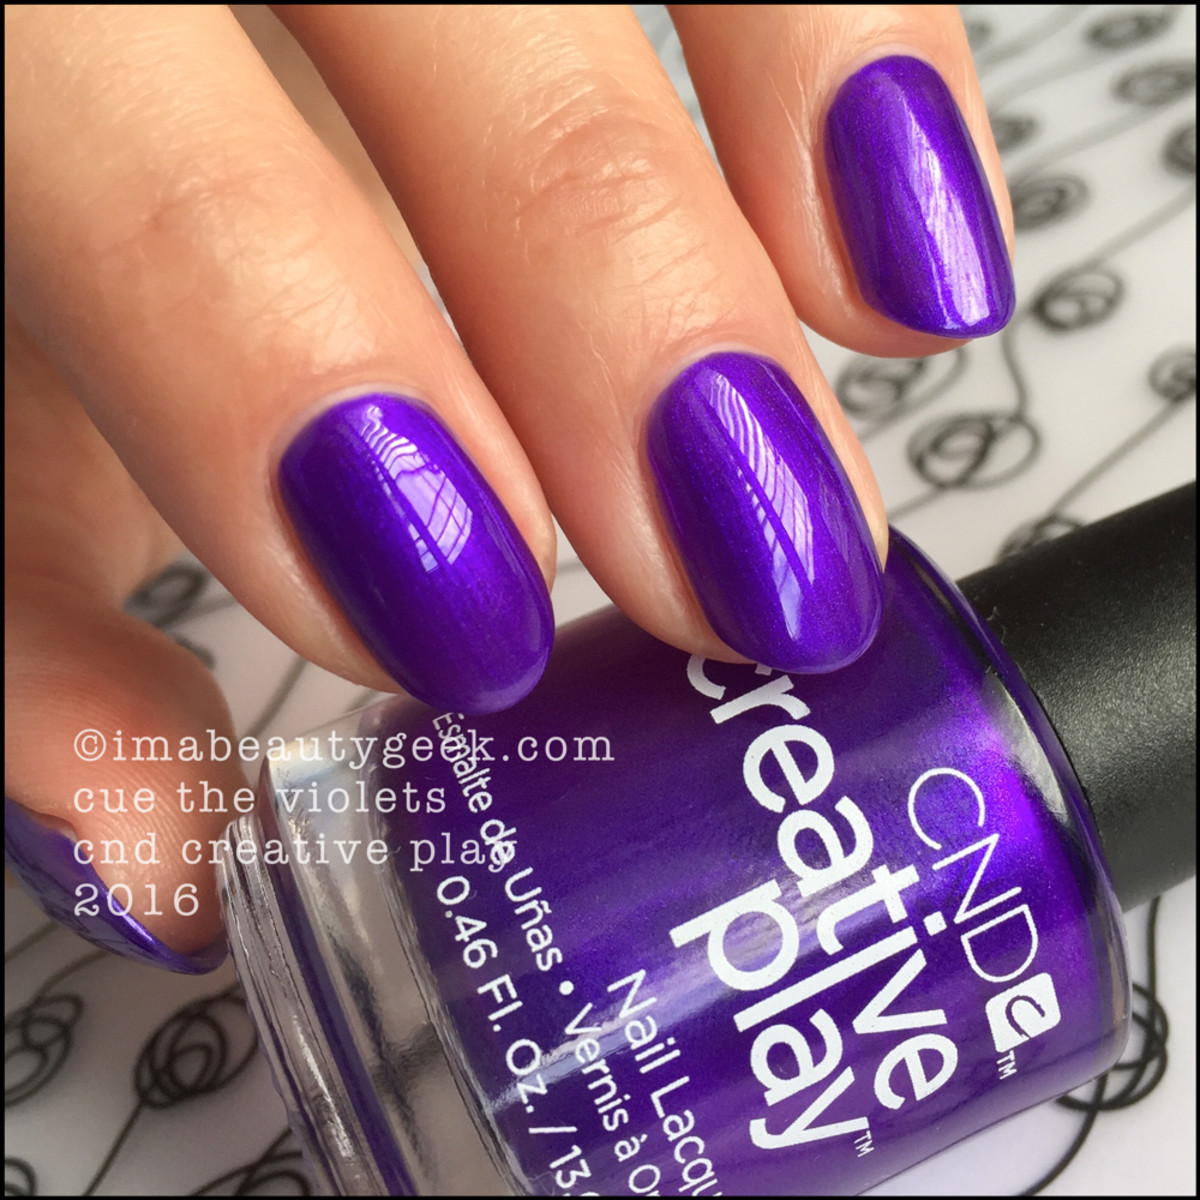 CND Creative Play Cue the Violets_CND Creative Play Nail Polish Swatches 2016